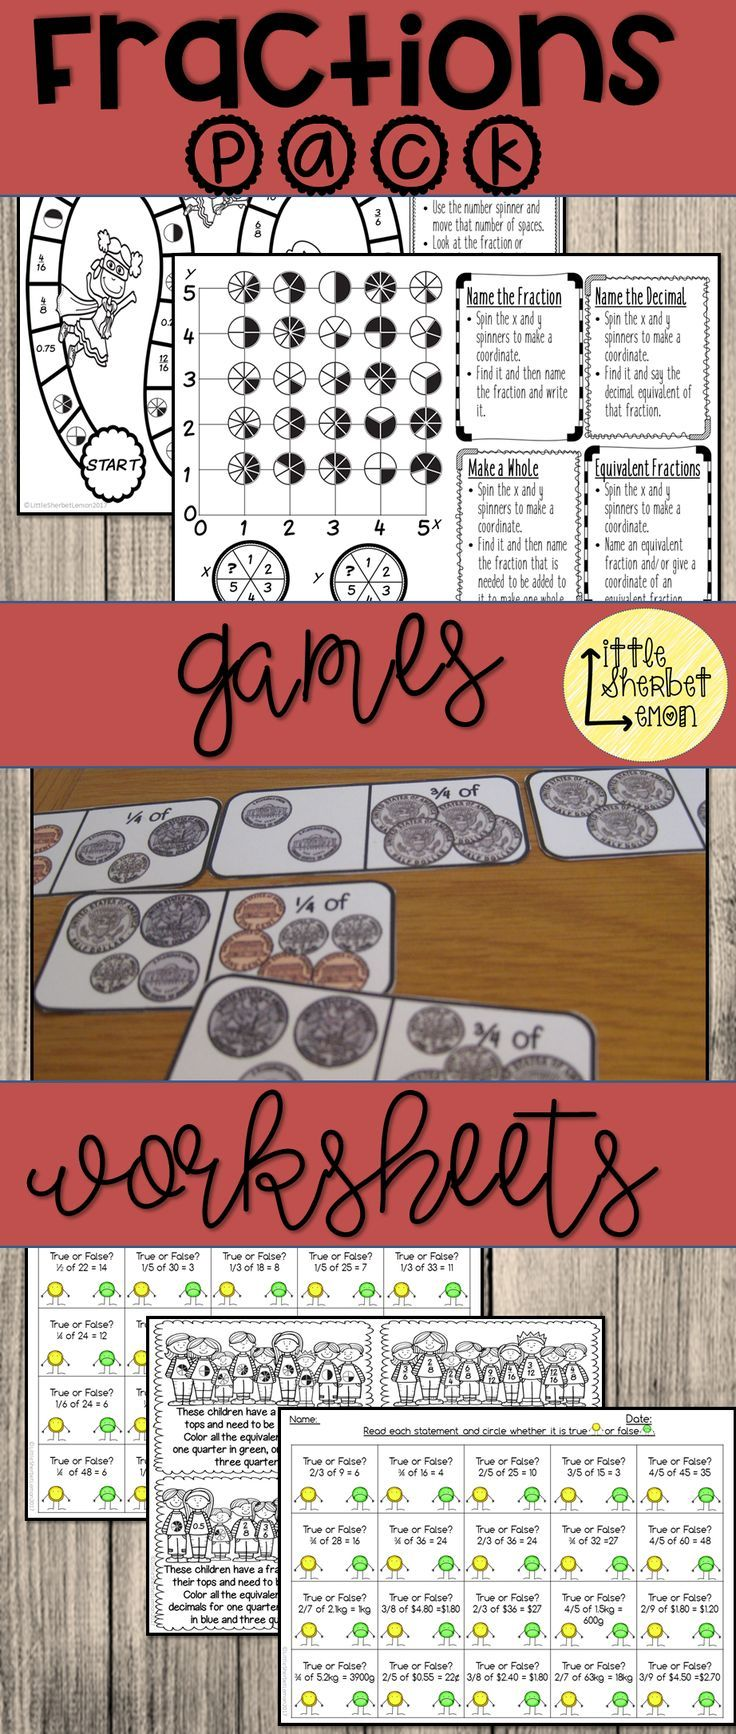 Fractions Worksheets and Games Pack   Worksheets  Game boards and     Fractions Worksheets and Games Pack   Worksheets  Game boards and Teaching  ideas